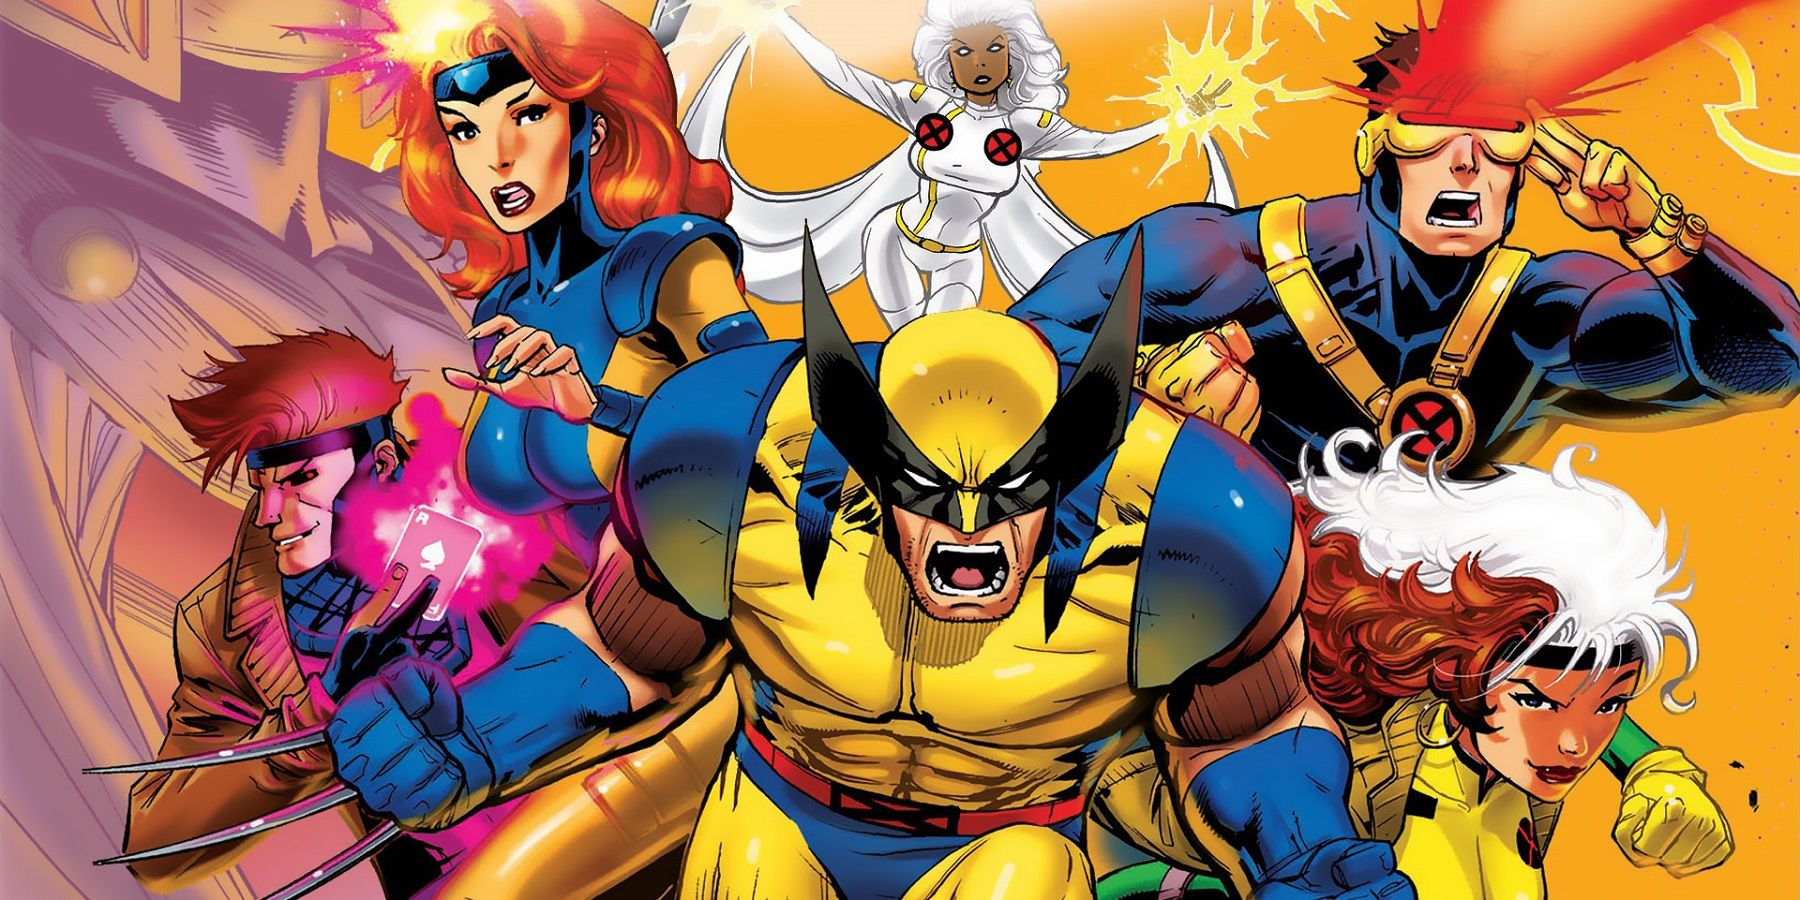 X Men Pics, Video Game Collection